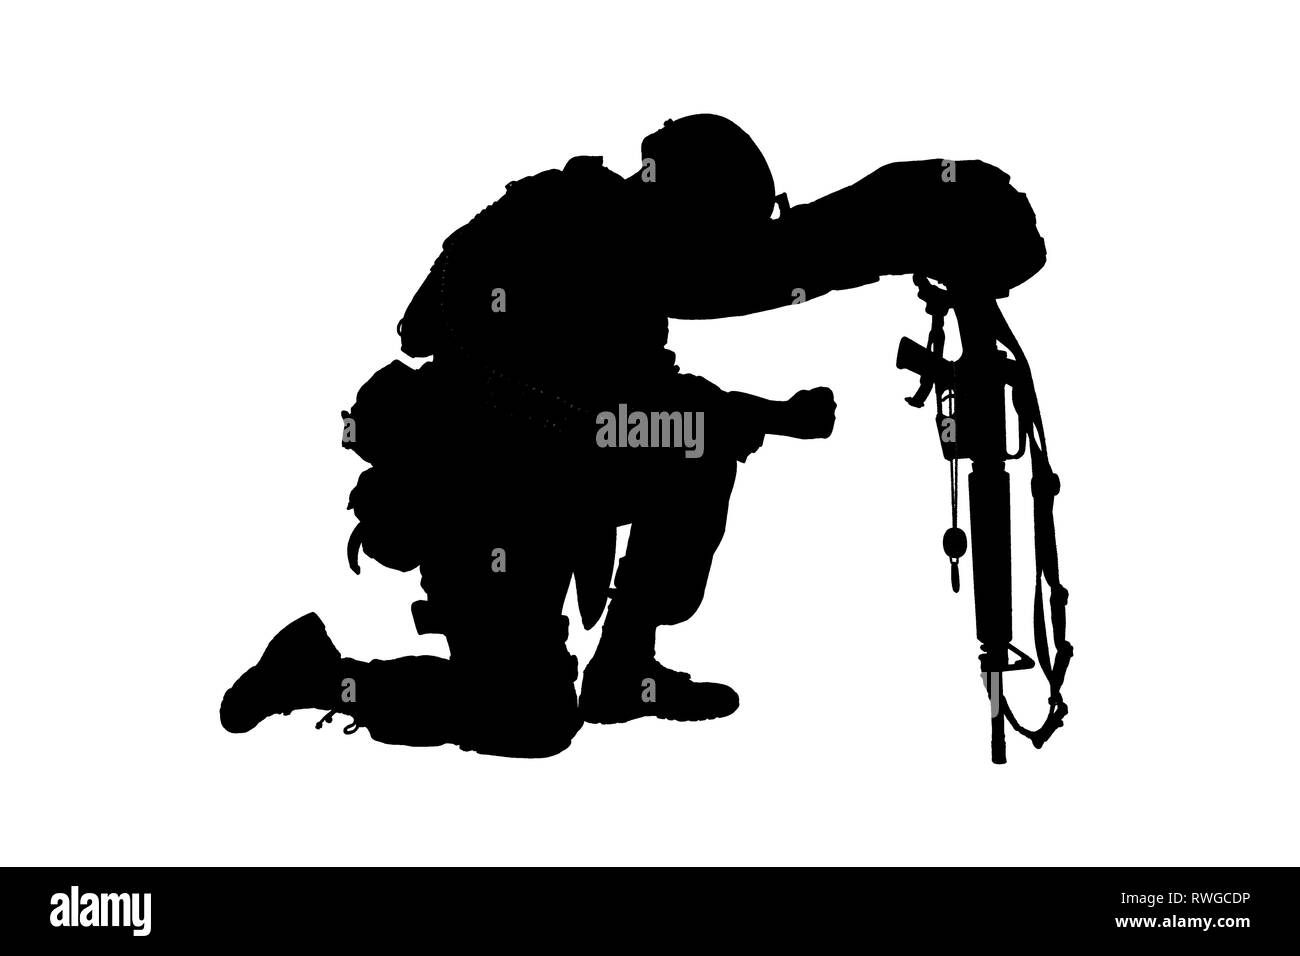 Silhouette of a soldier kneeling in respect for a fallen comrade. - Stock Image